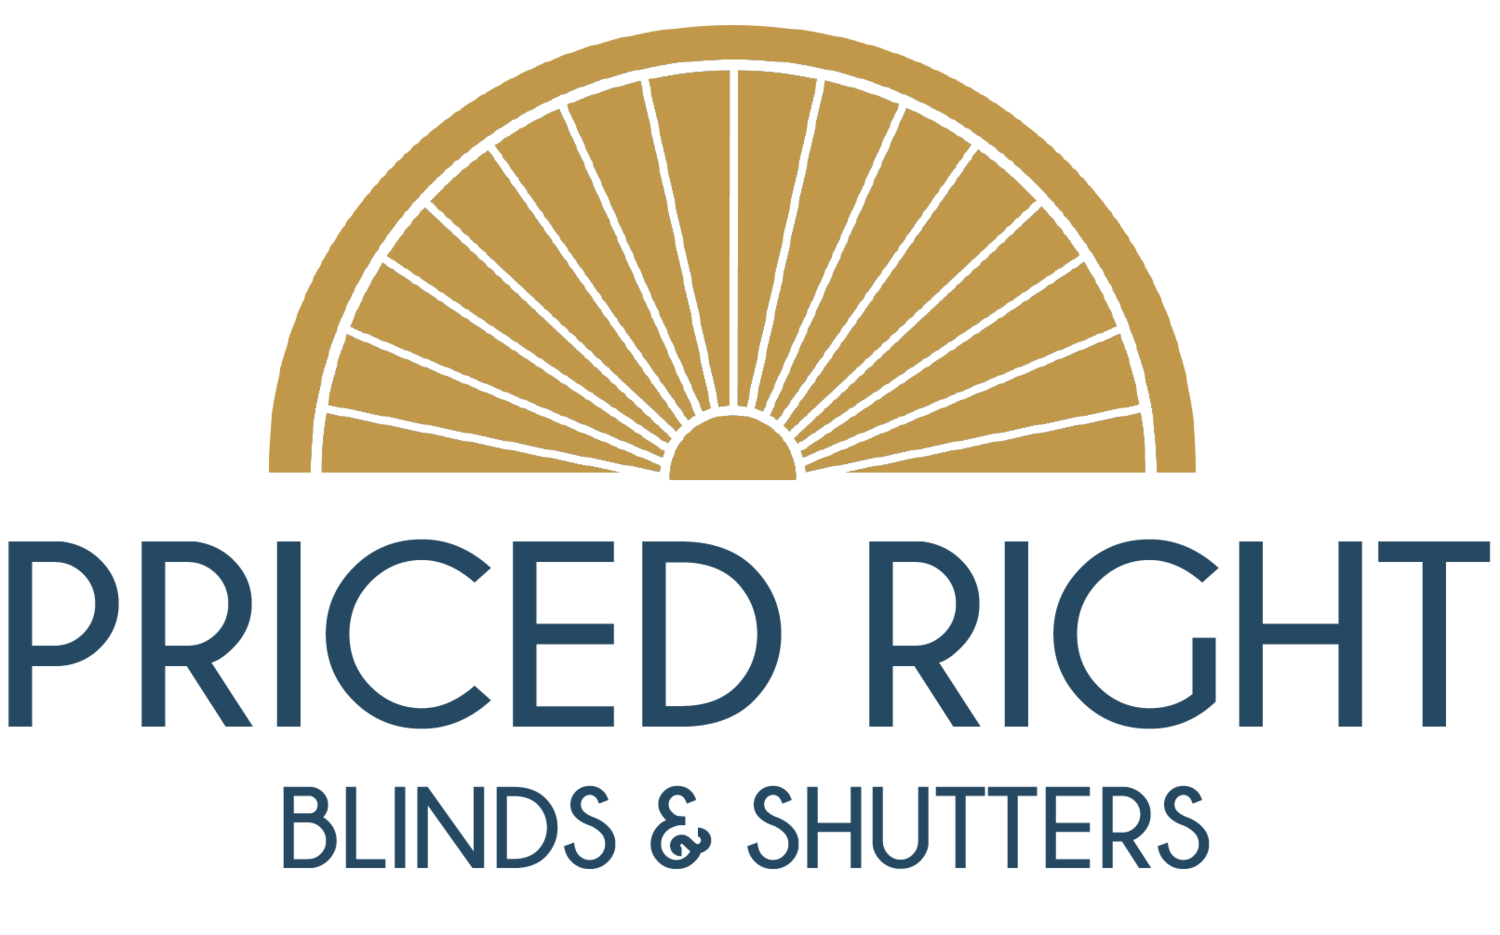 Priced Right Blinds & Shutters